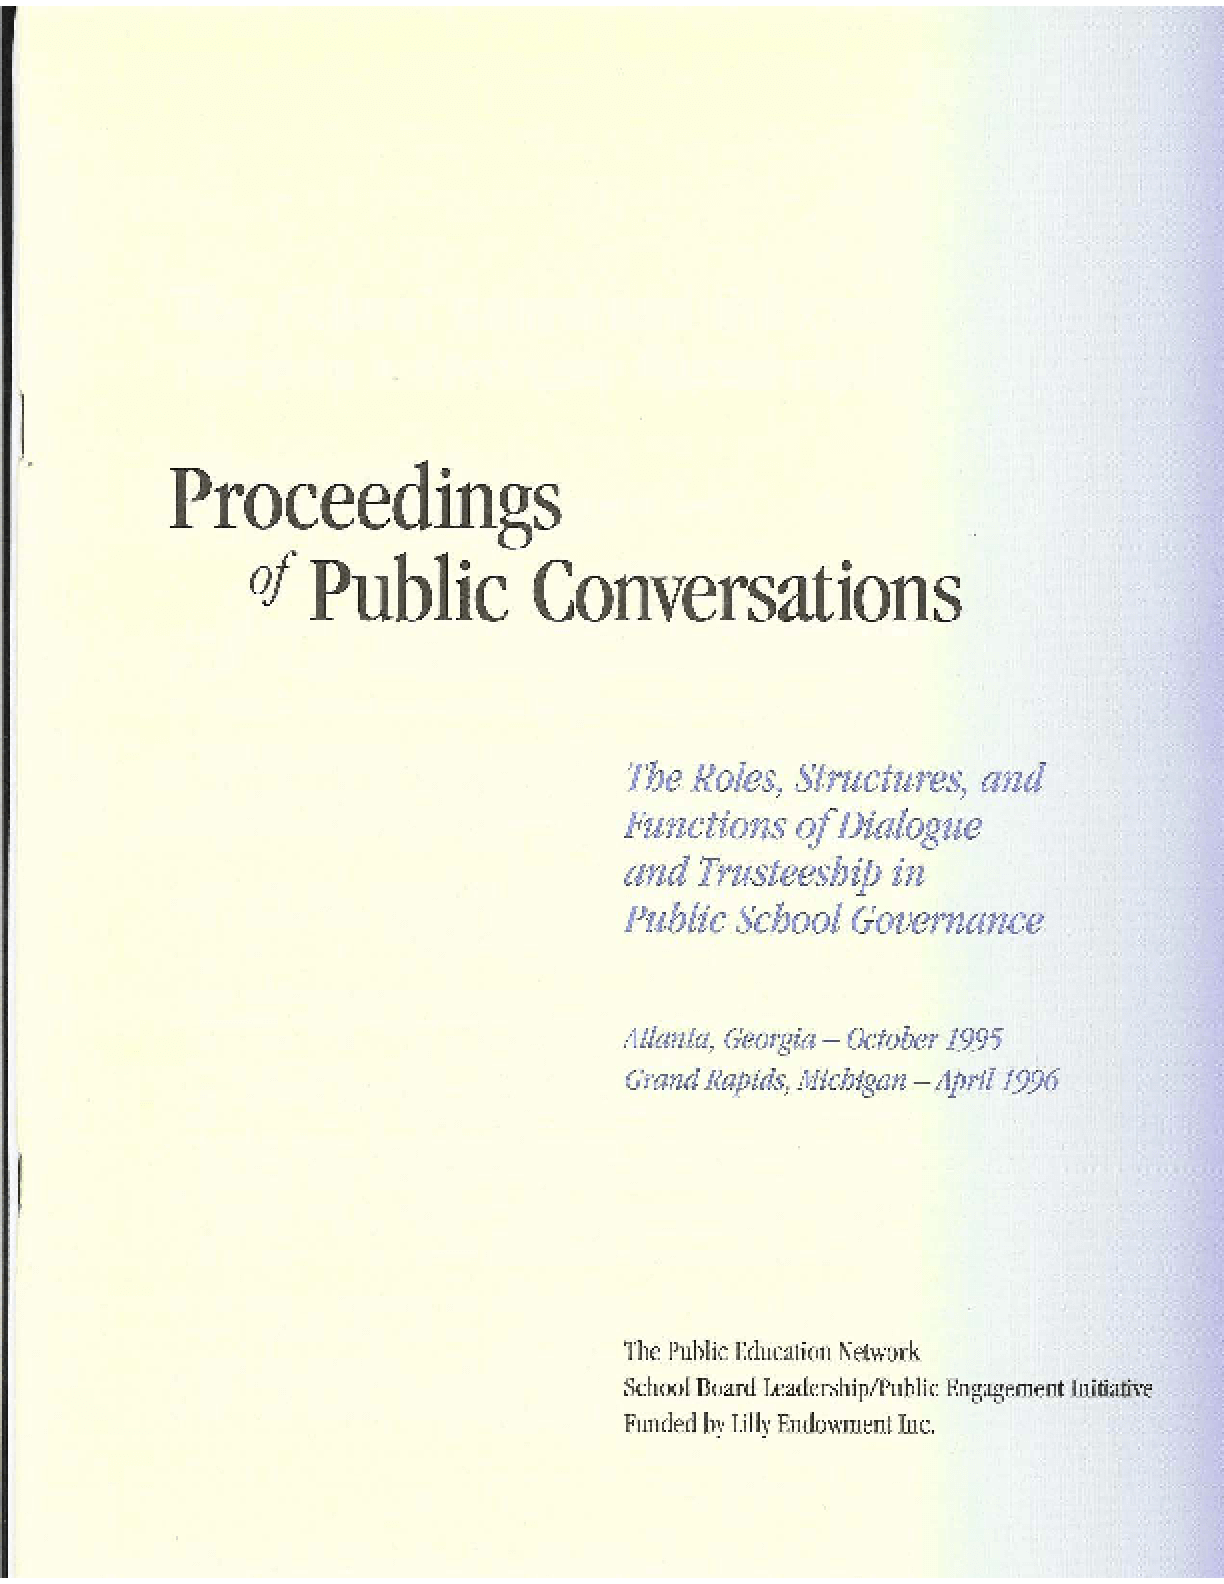 Proceedings of Public Conversations: The Roles, Structures, and Functions of Dialogue and Trusteeship in Public School Governance